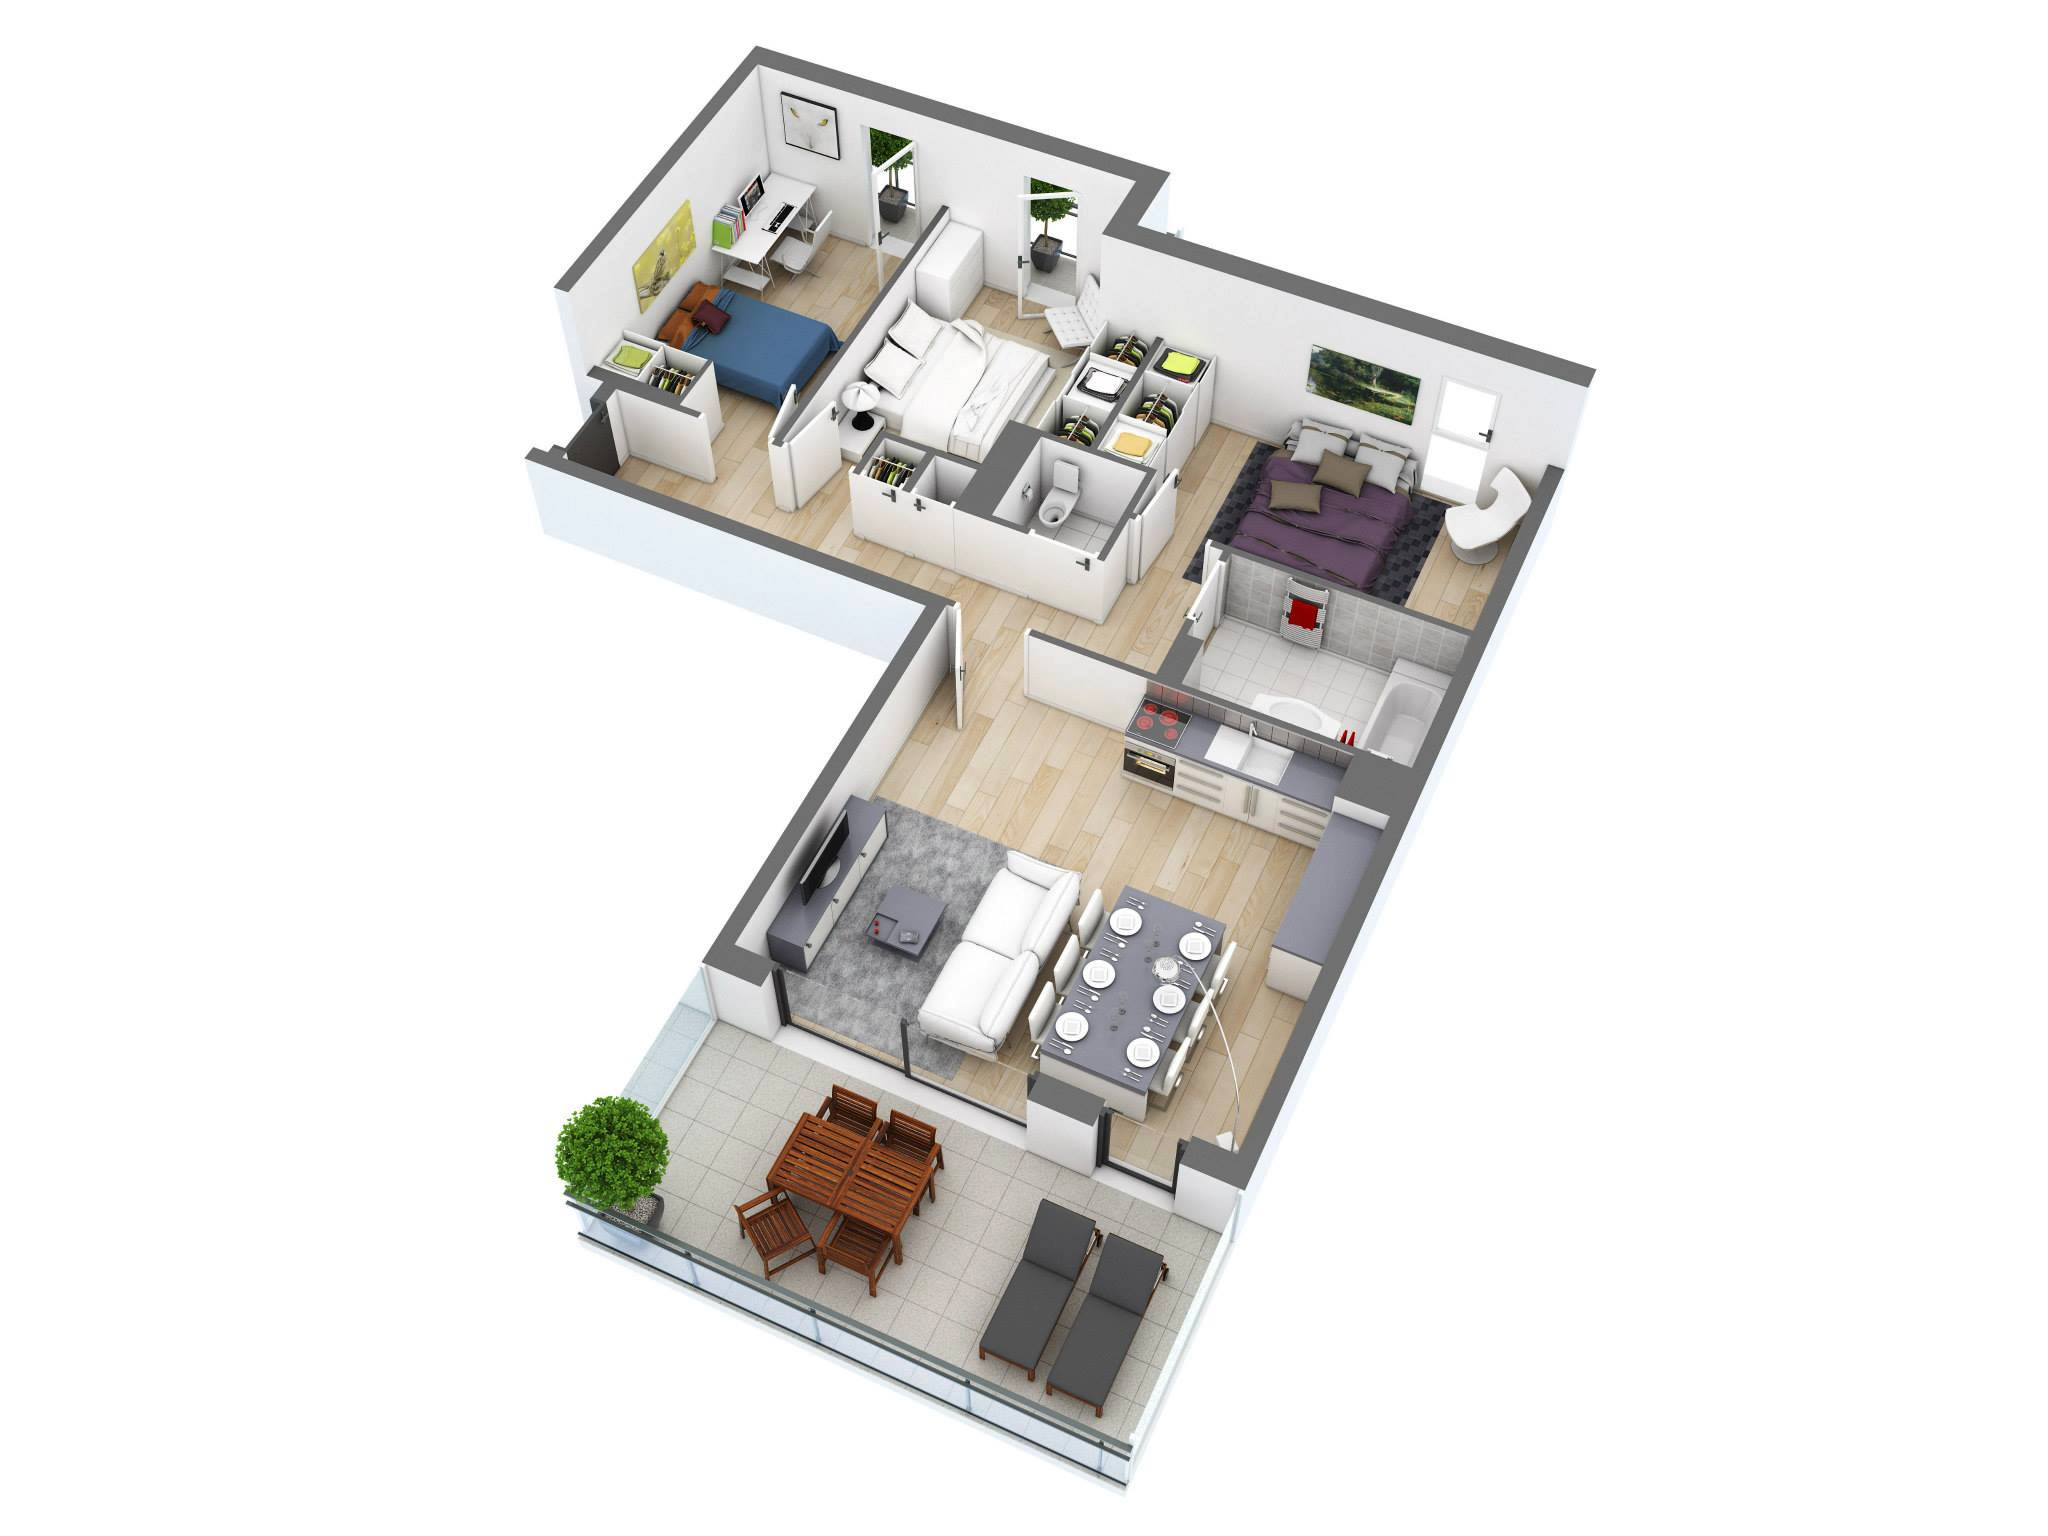 25 more 3 bedroom 3d floor plans architecture design for Architecture design house plans 3d